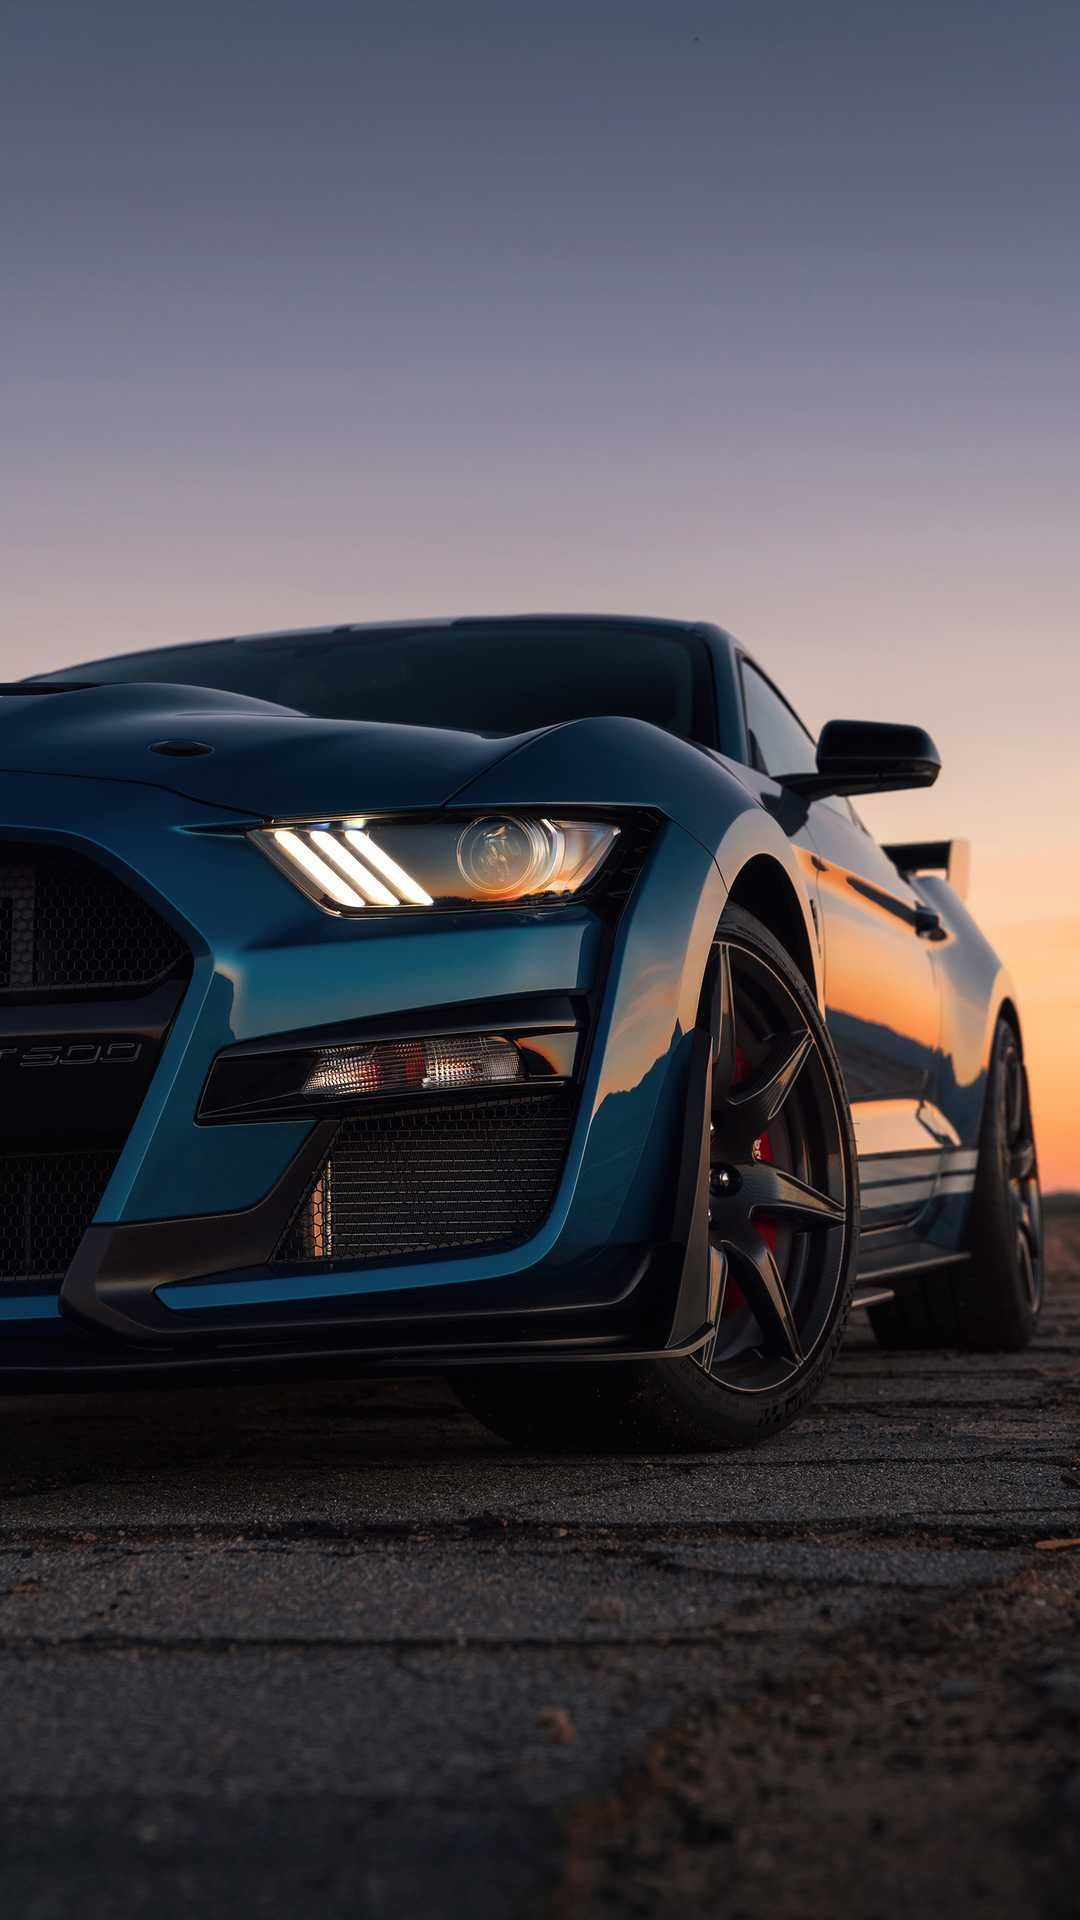 Follow Yasholo Unreal Shakespeare In 2020 Mustang Cars Super Cars Ford Mustang Wallpaper